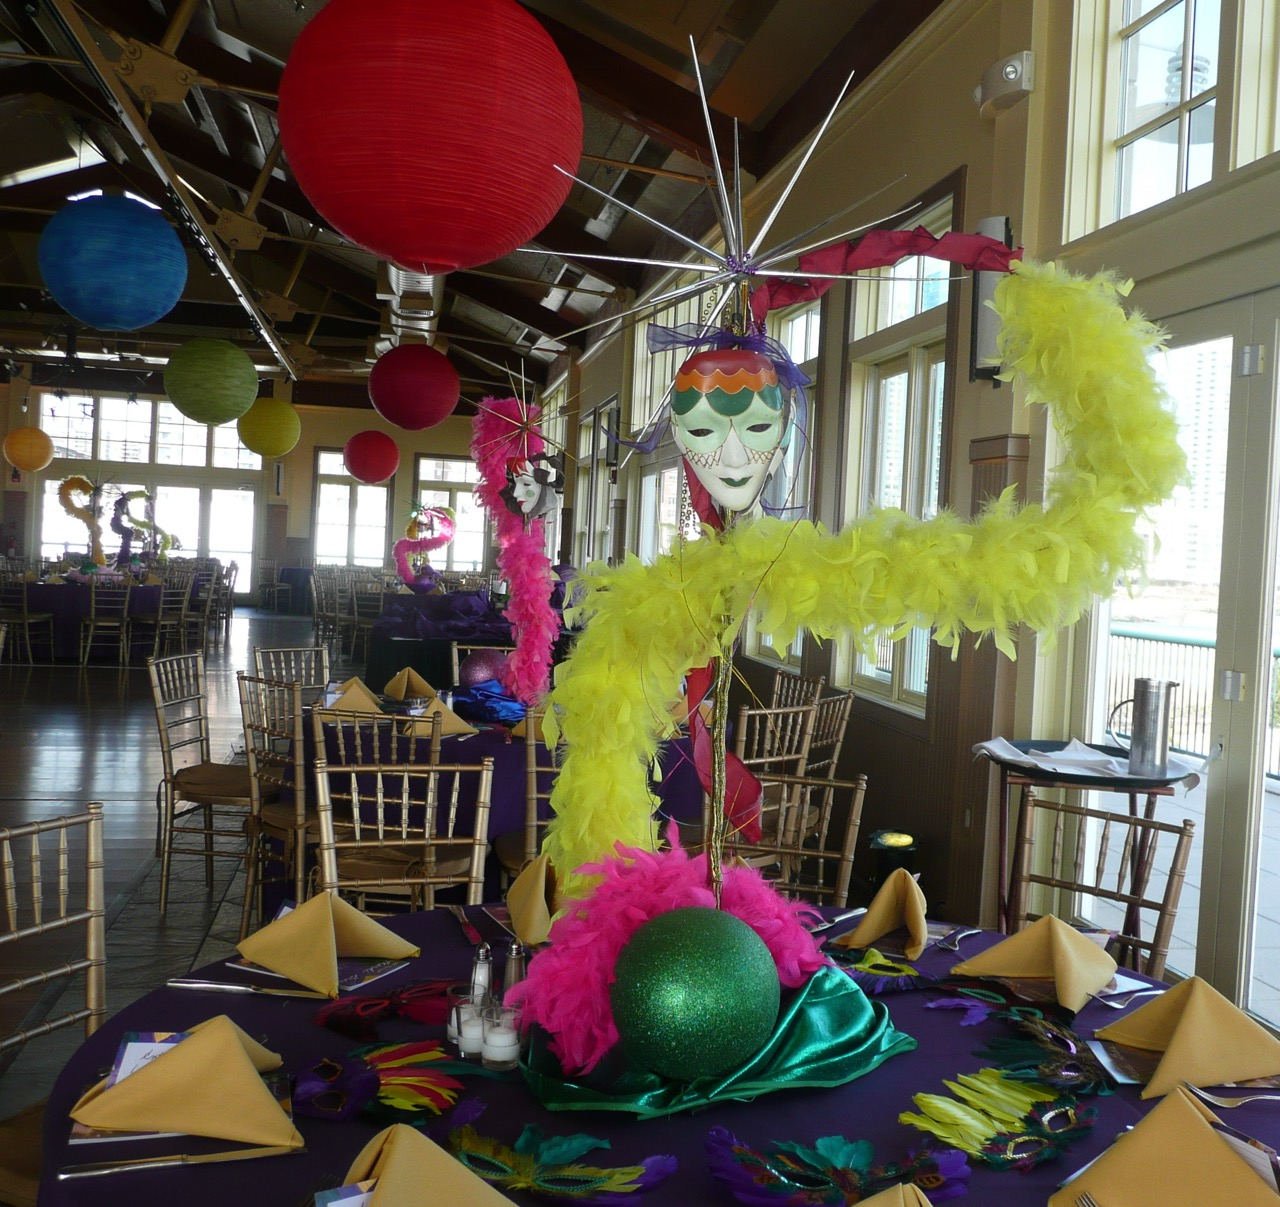 Eggsotic Events Masquerade Theme Decor and Lighting 05.jpg